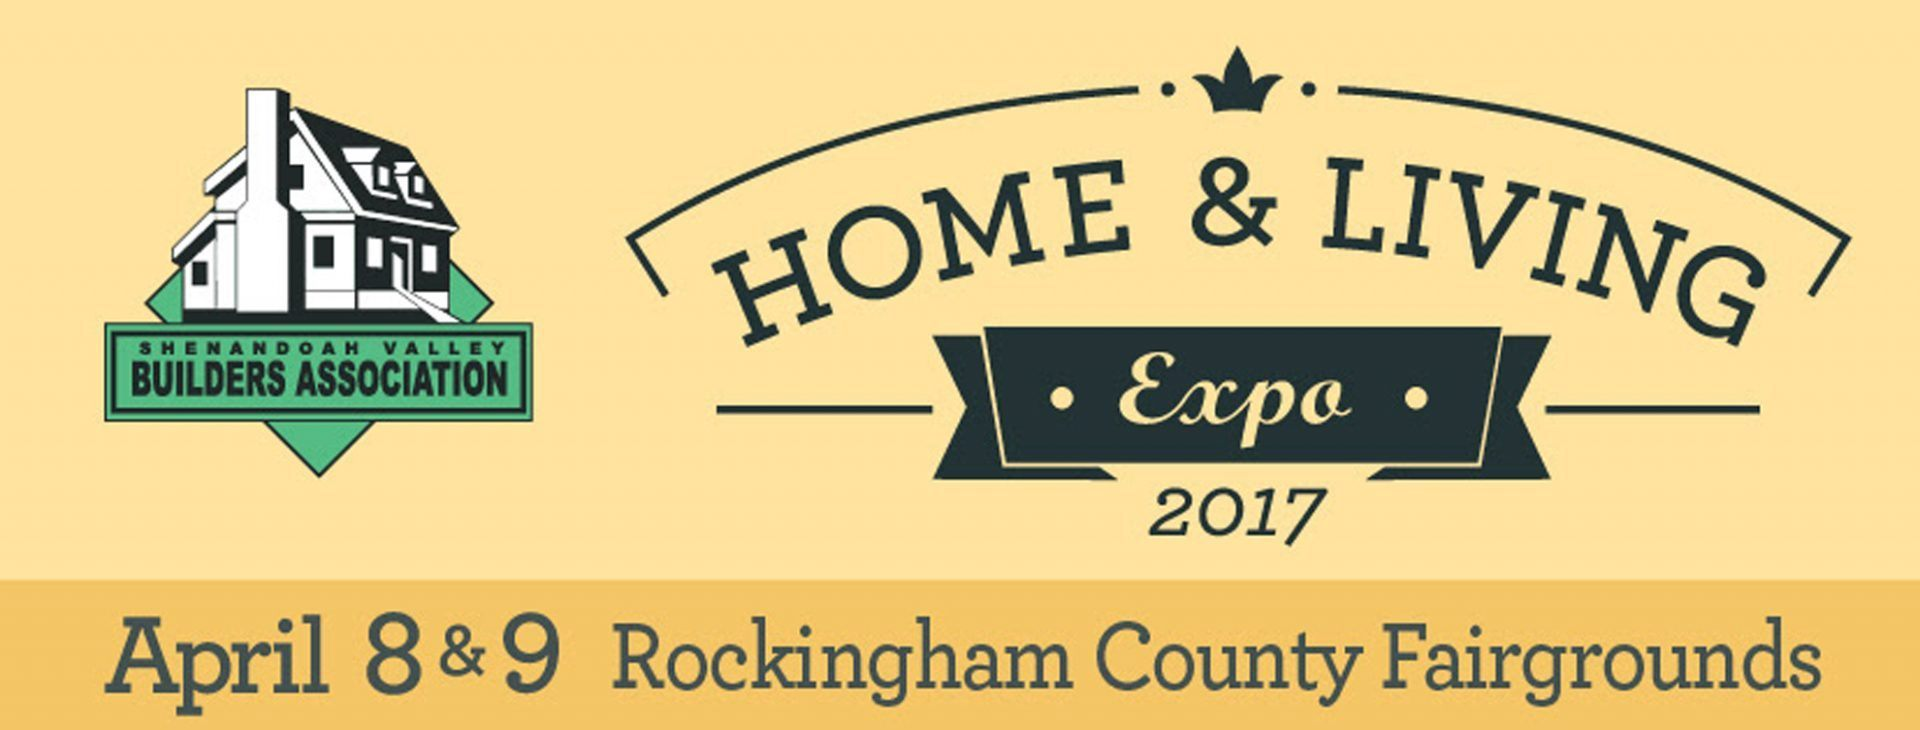 Home & Living Expo 2017